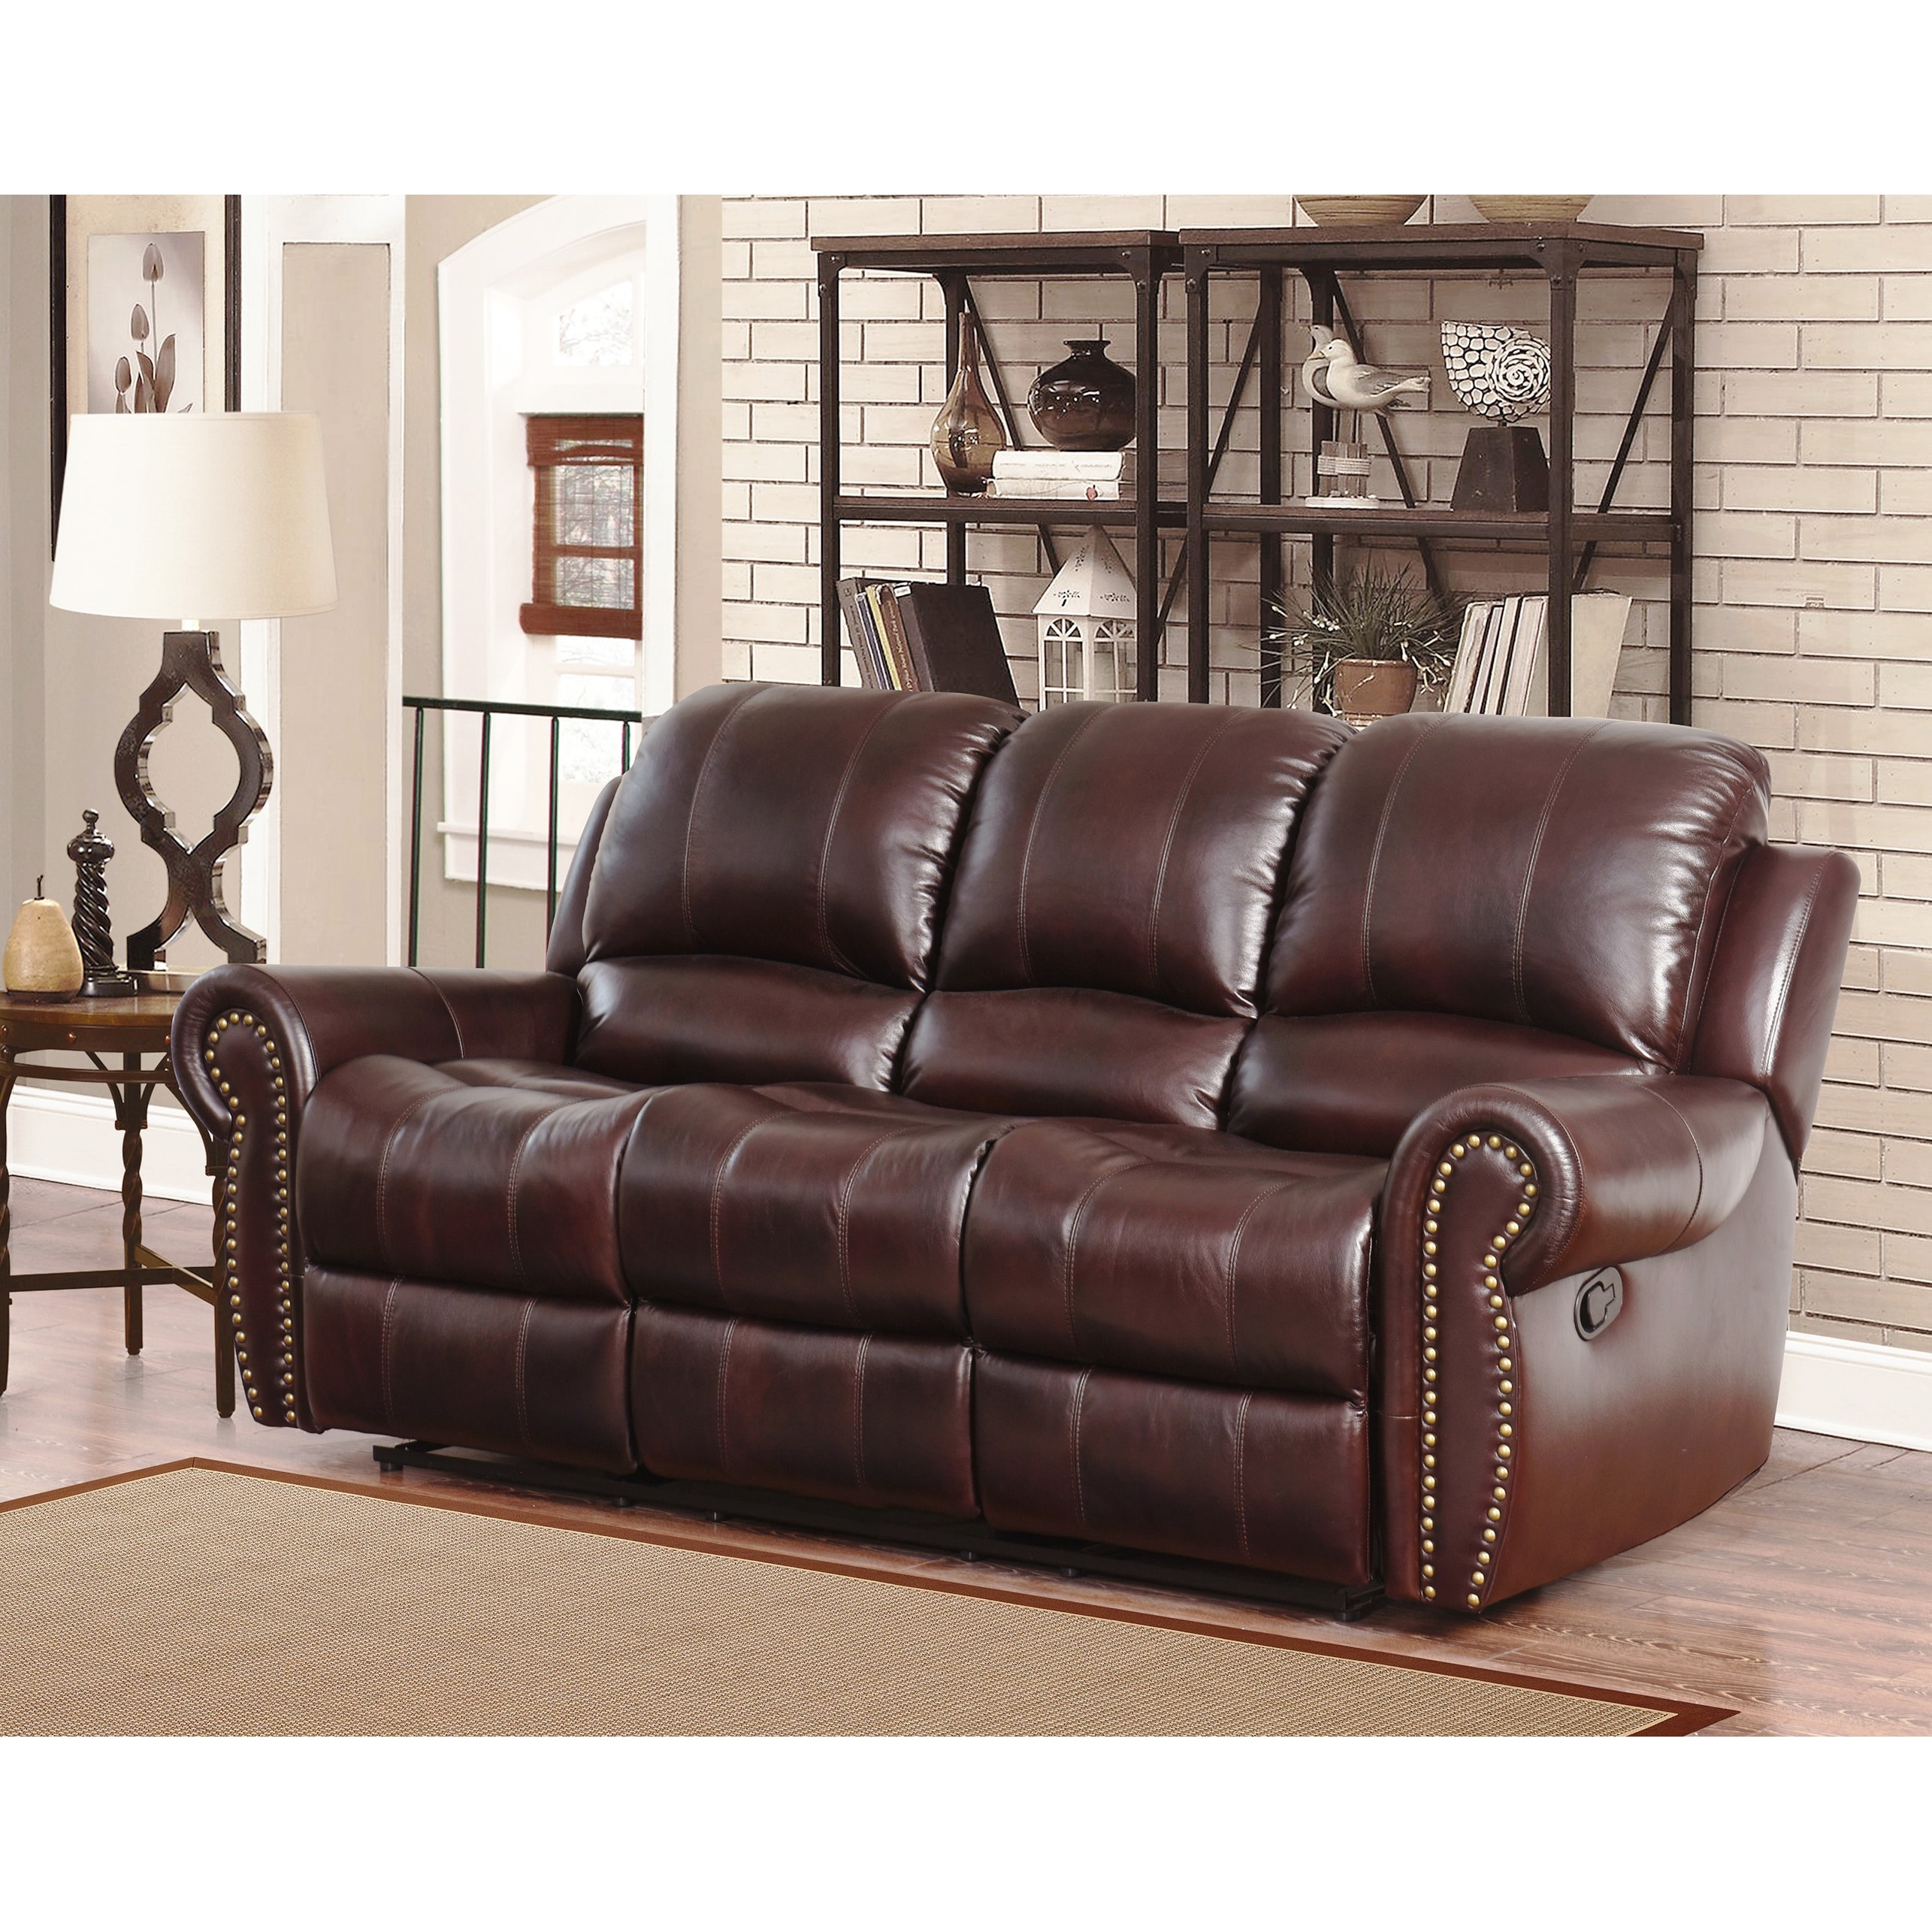 Top Grain Leather Recliner Sofa 1025theparty Com ~ Payton Power Reclining Sofa